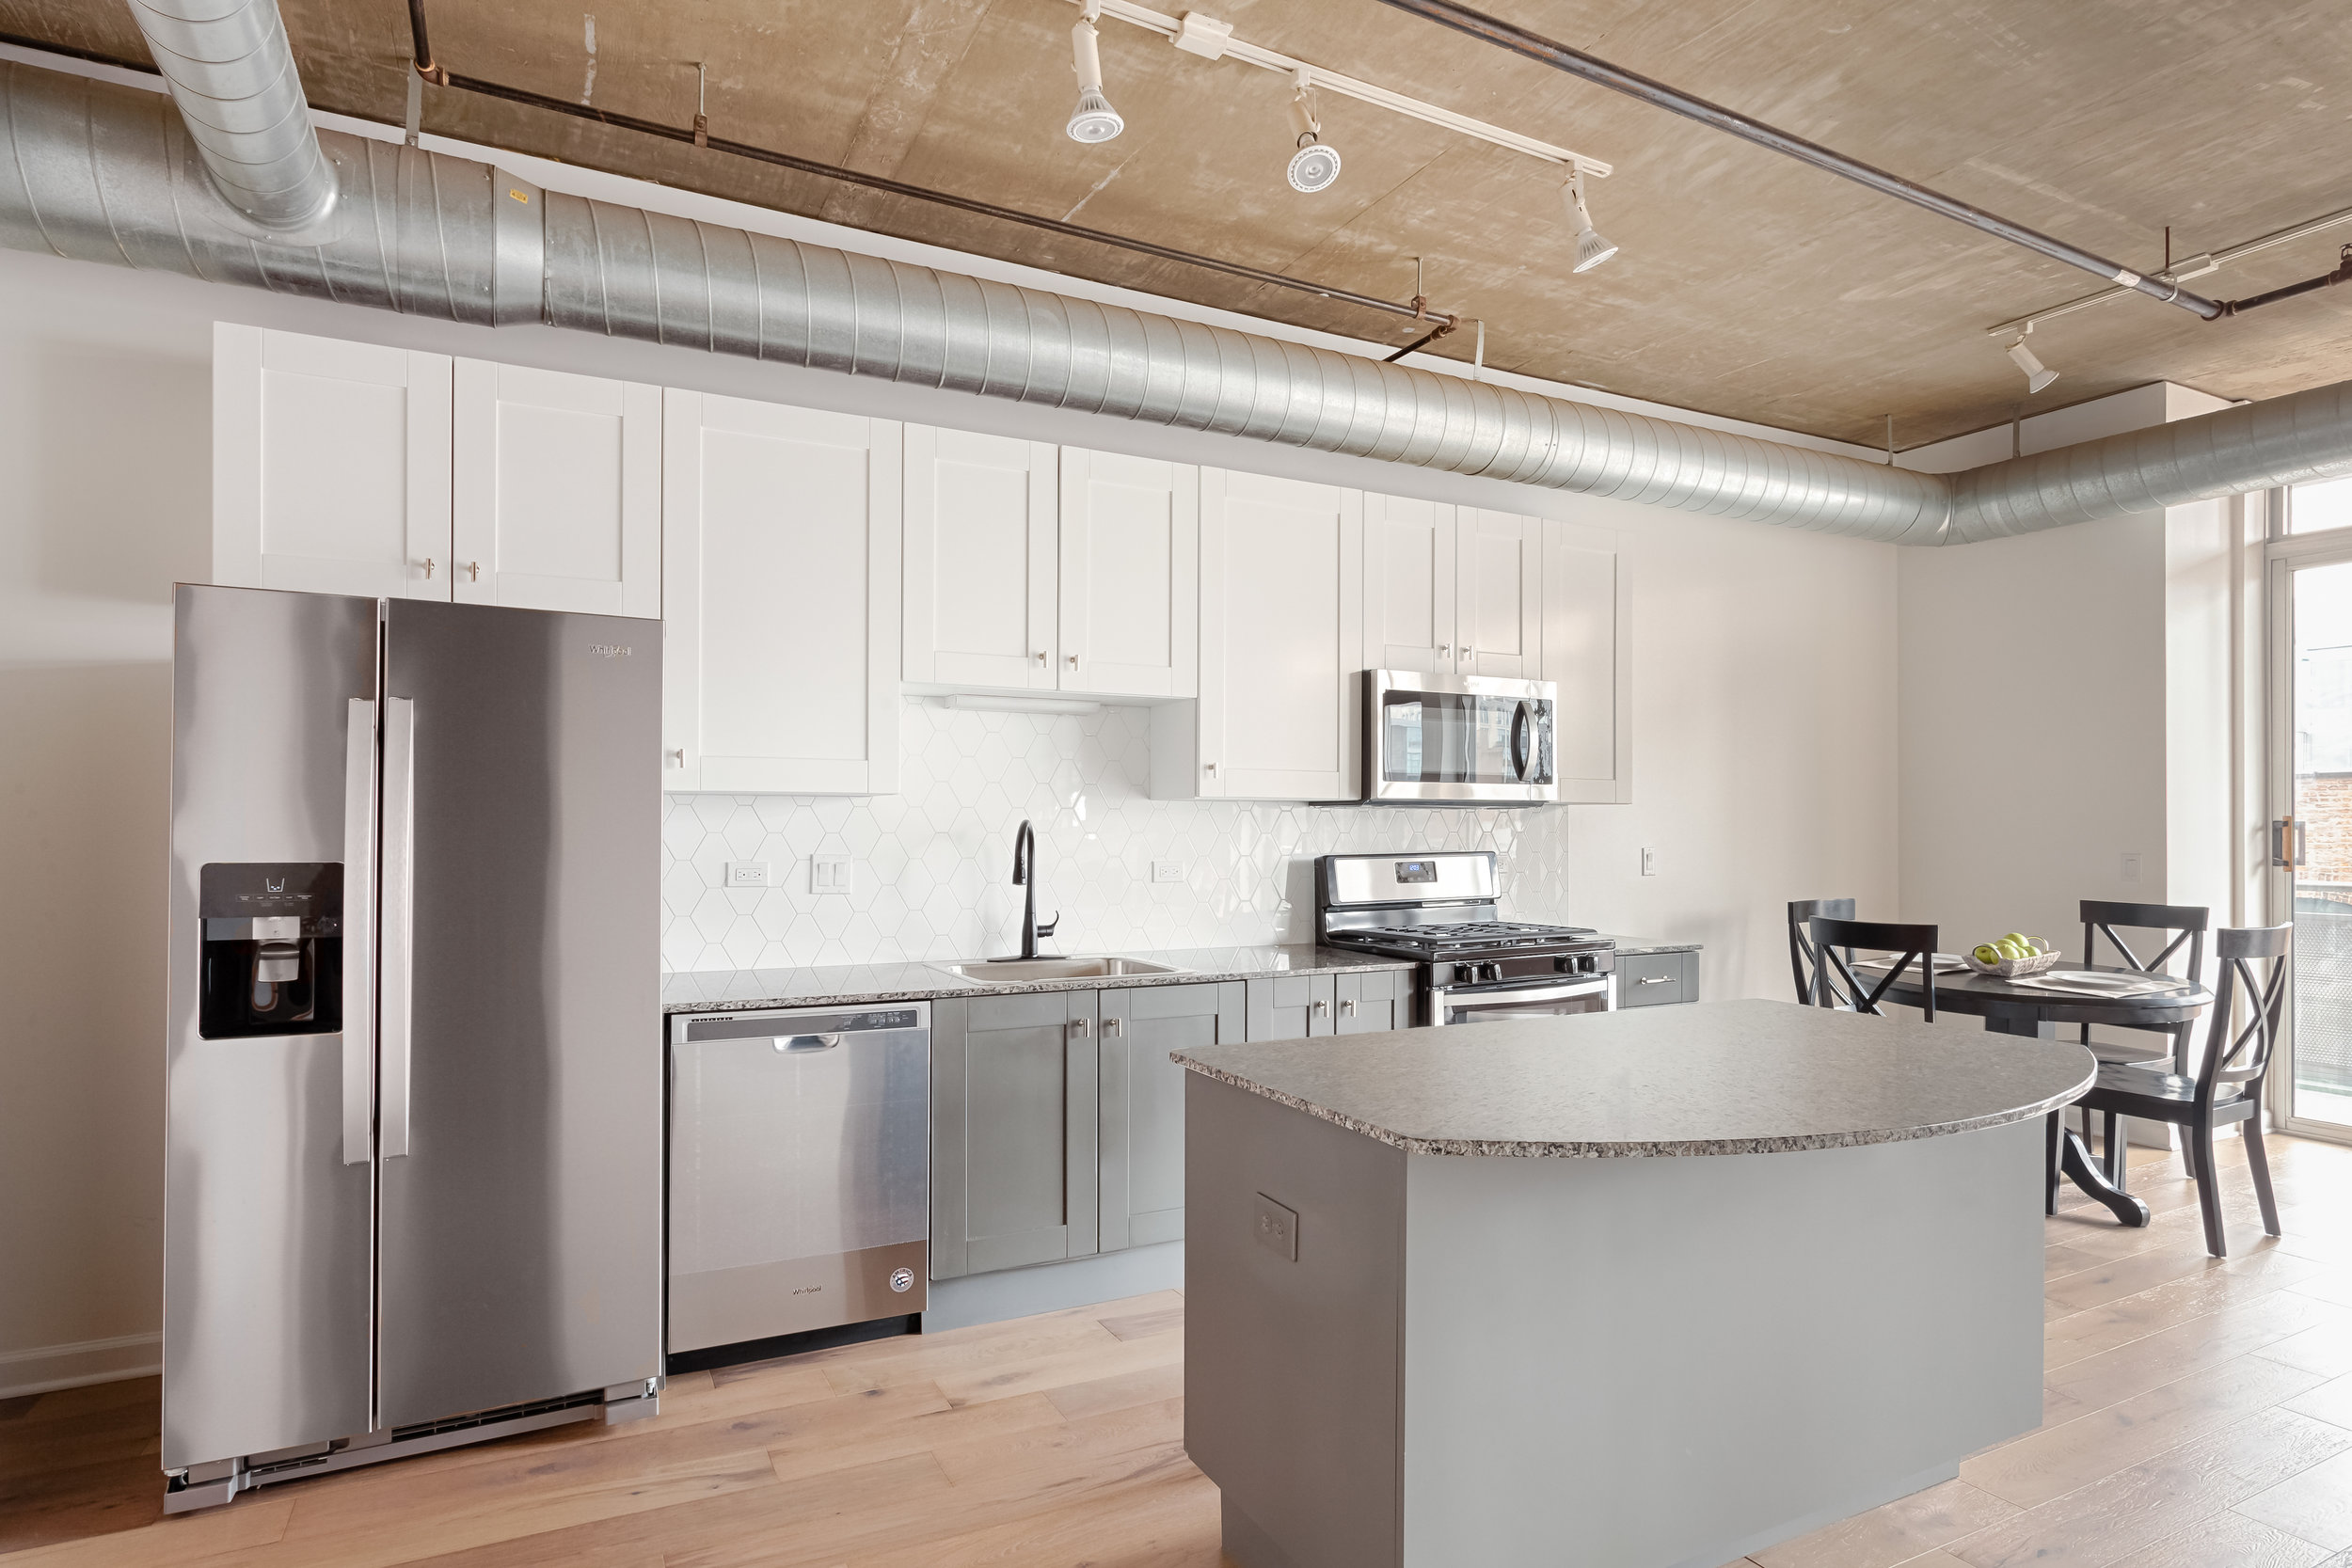 West Loop Loft - Construction Cost: $28,000Construction Time: 4 weeksList Price: $365,000Sale Price: $360,000Market Time: 3 Days